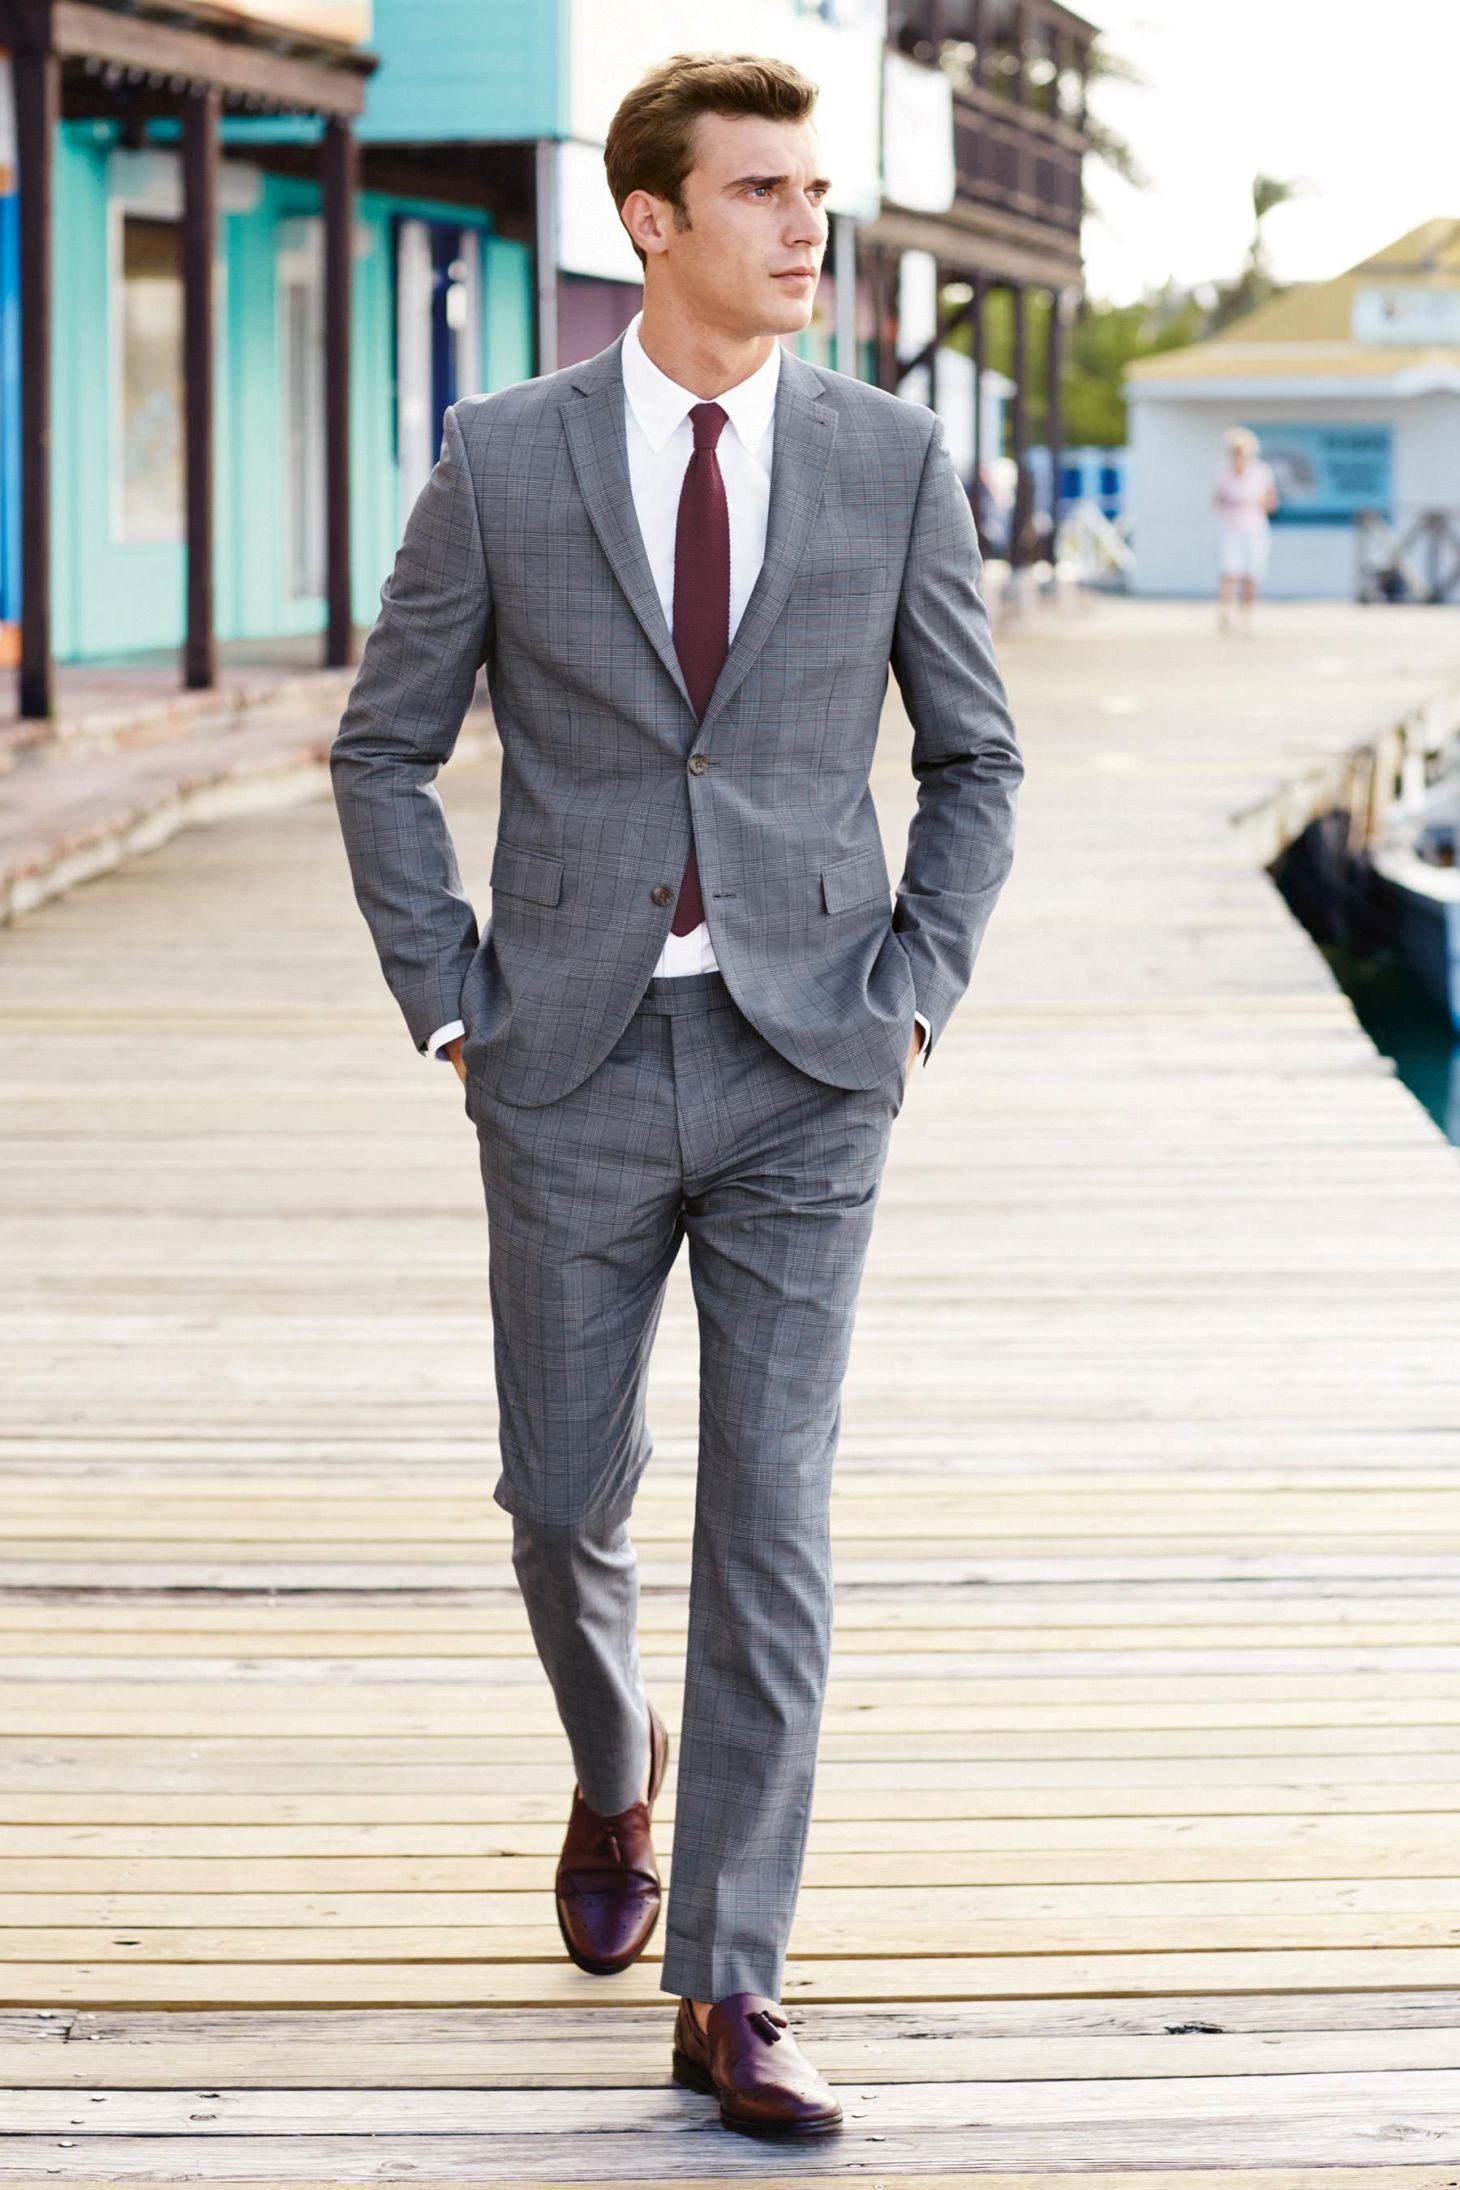 How to Wear a Grey Plaid Suit (54 looks) | Men's Fashion